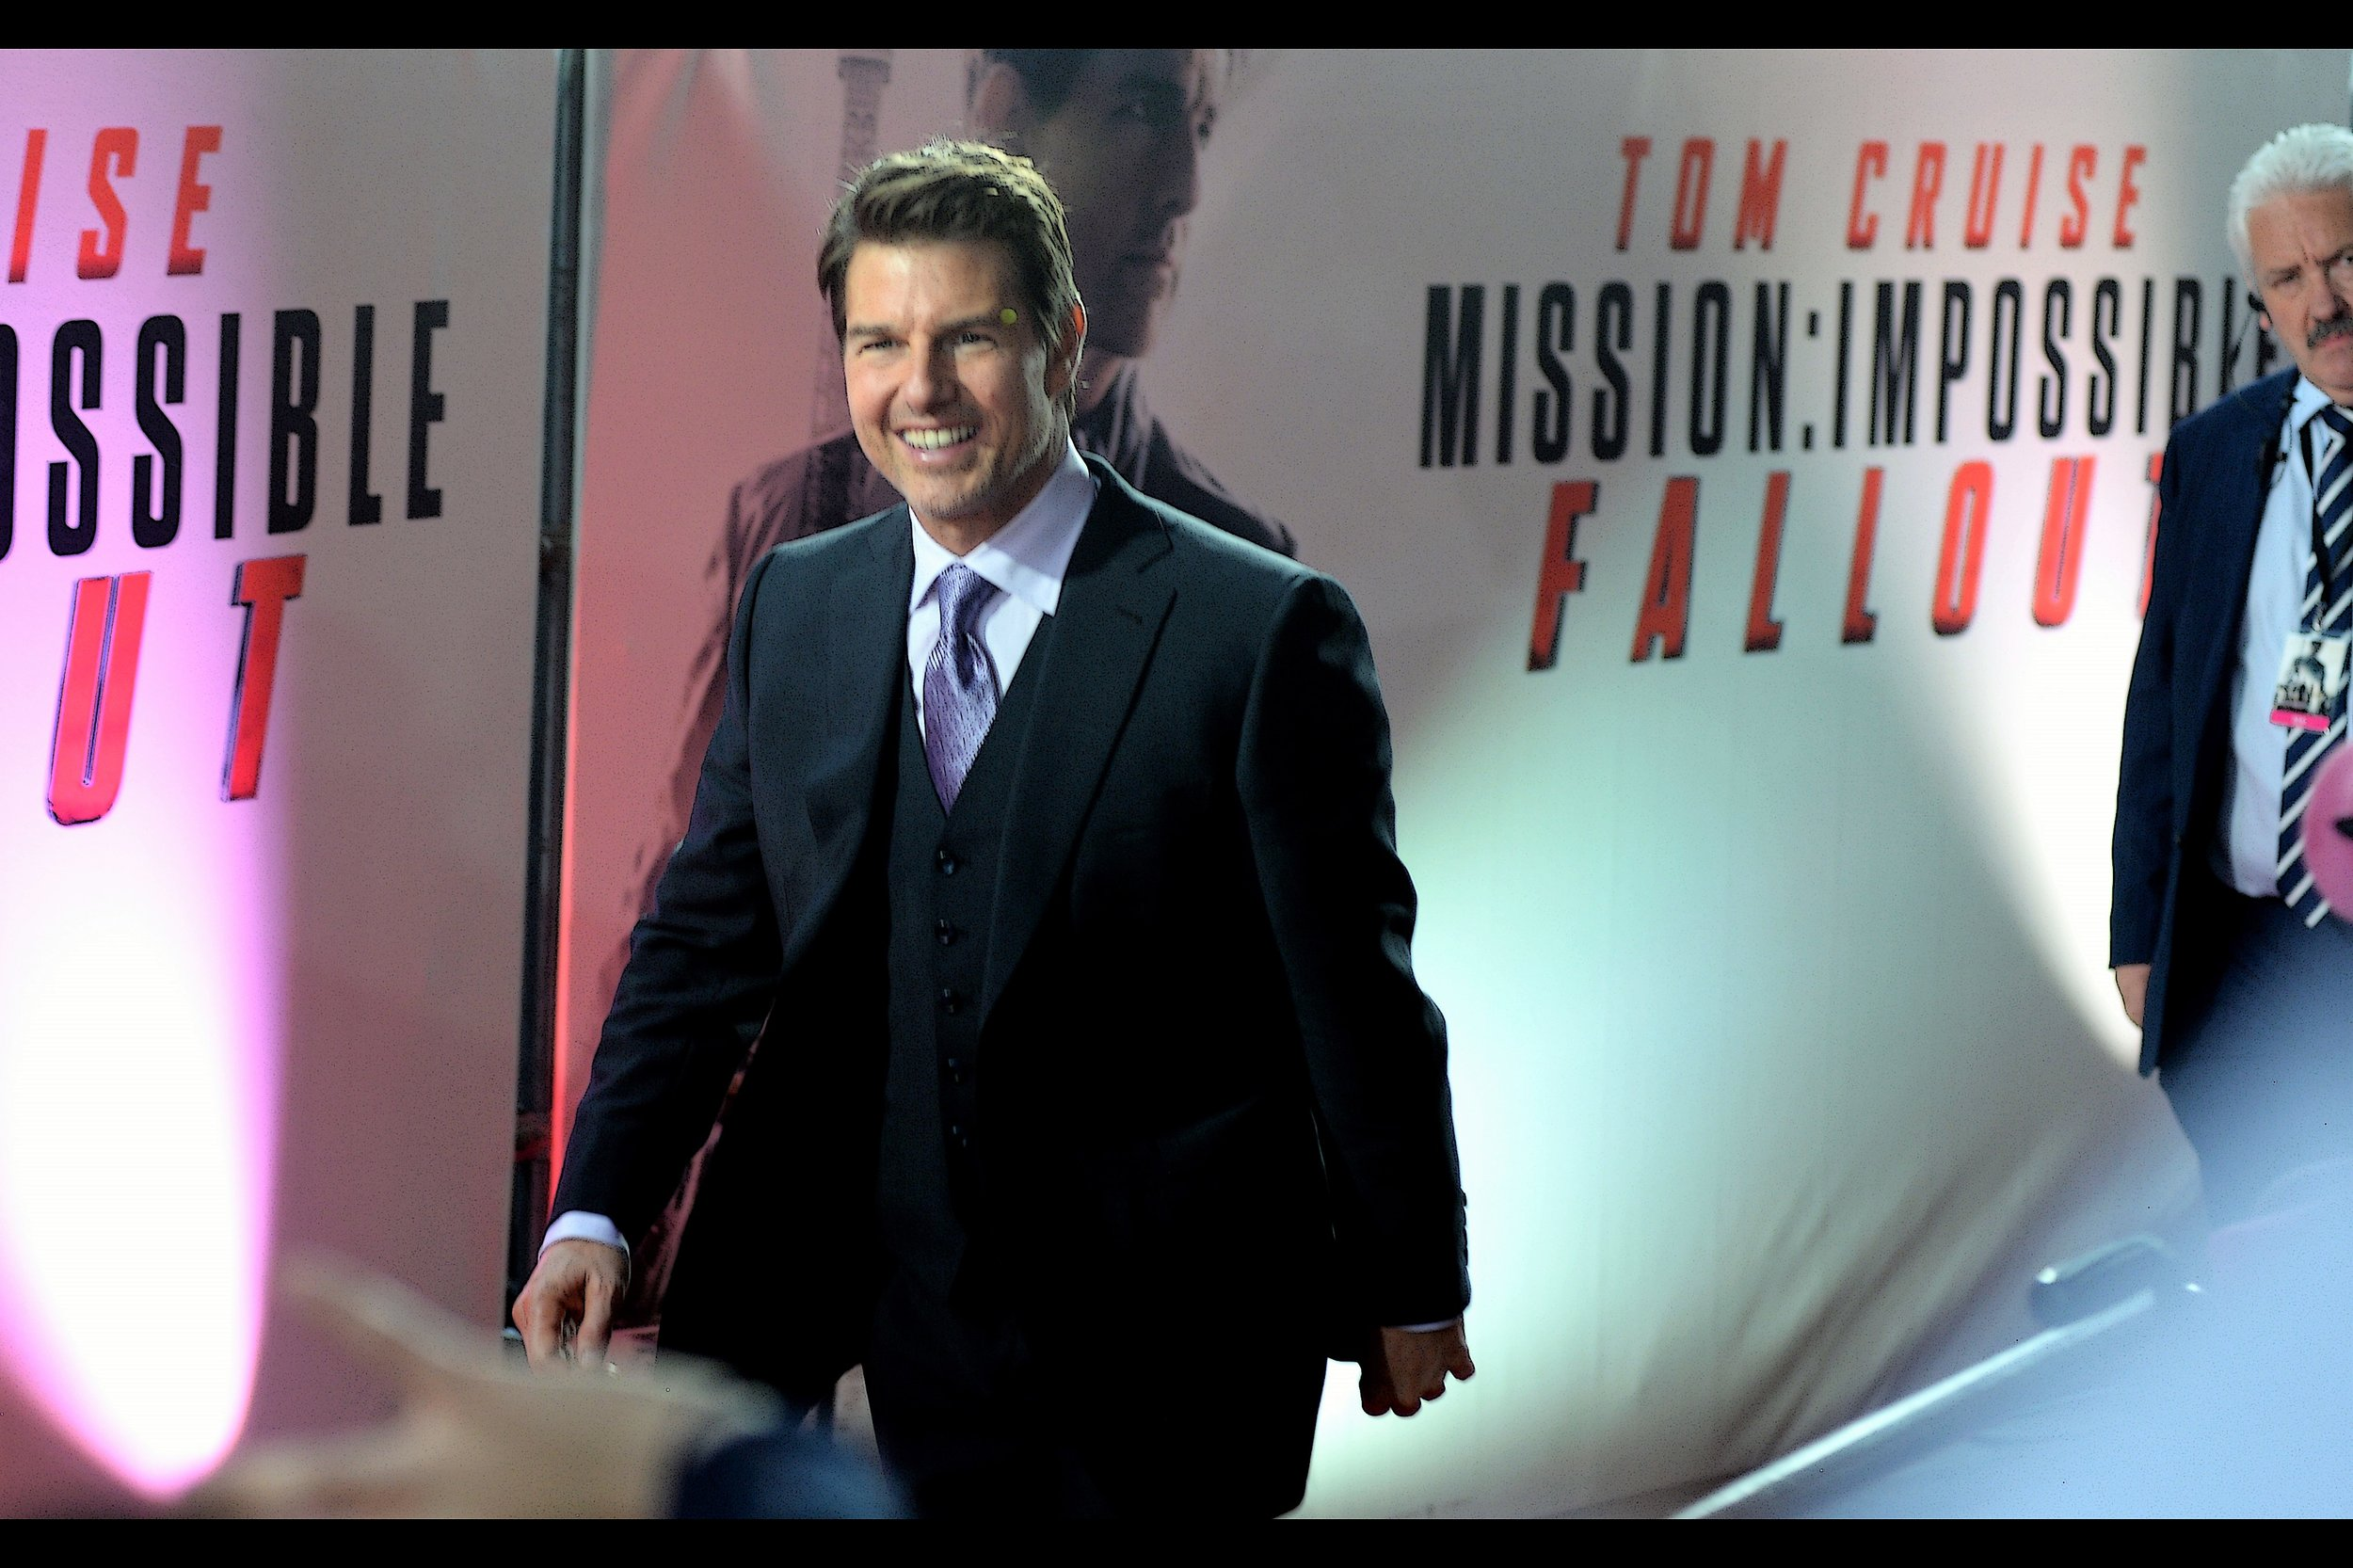 After pausing briefly for another interview, Tom Cruise RETURNS to do more signing!